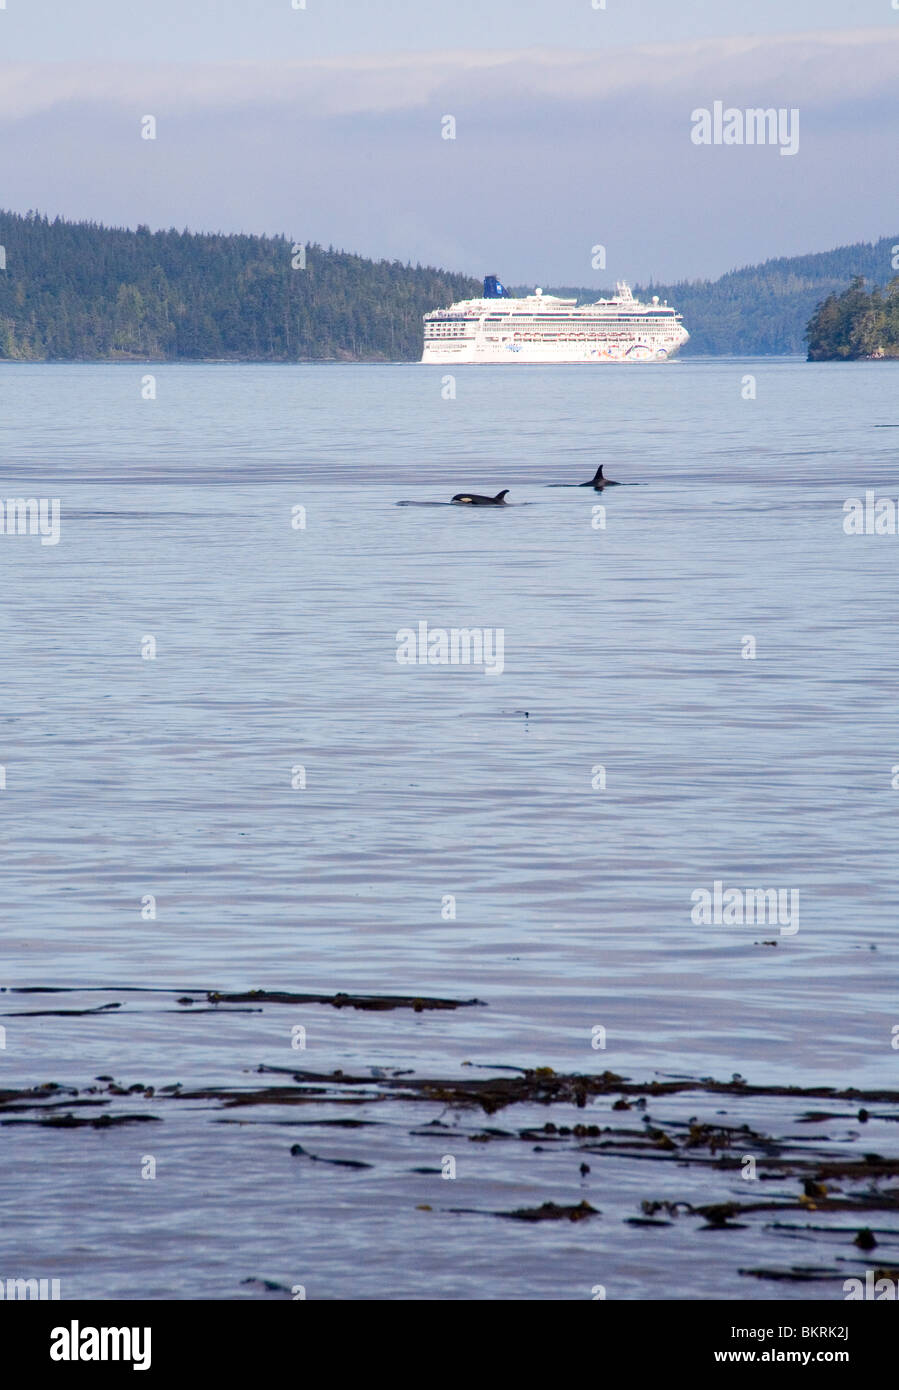 Orcas and cruise ship in Johnstone Strait - Stock Image